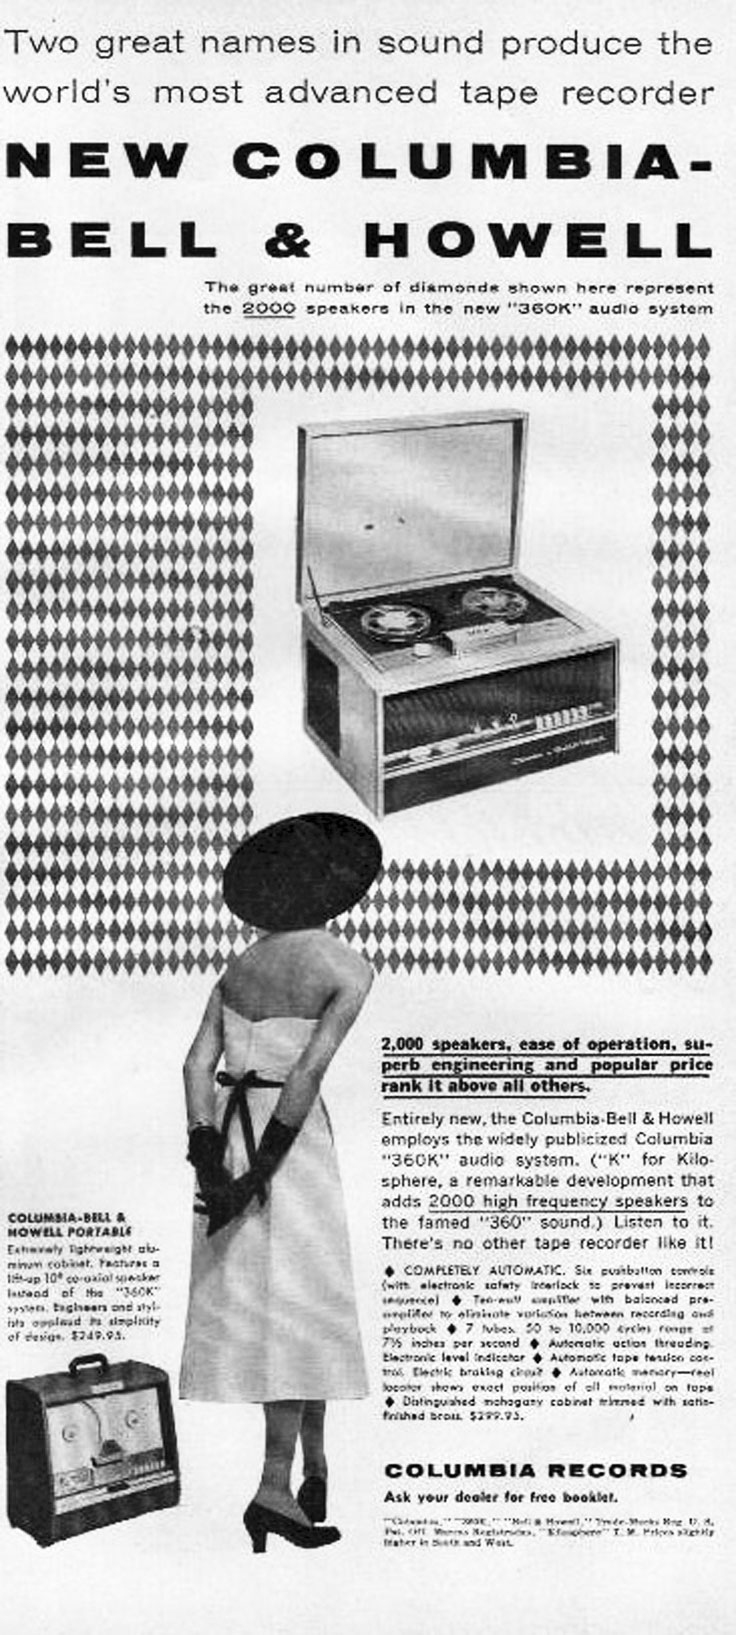 1954 Bell and Howell reel to reel tape recorder ad in the Museum of Magnetic Sound Recording / Reel2ReelTexas.com vintage reel tape recorder recording collection